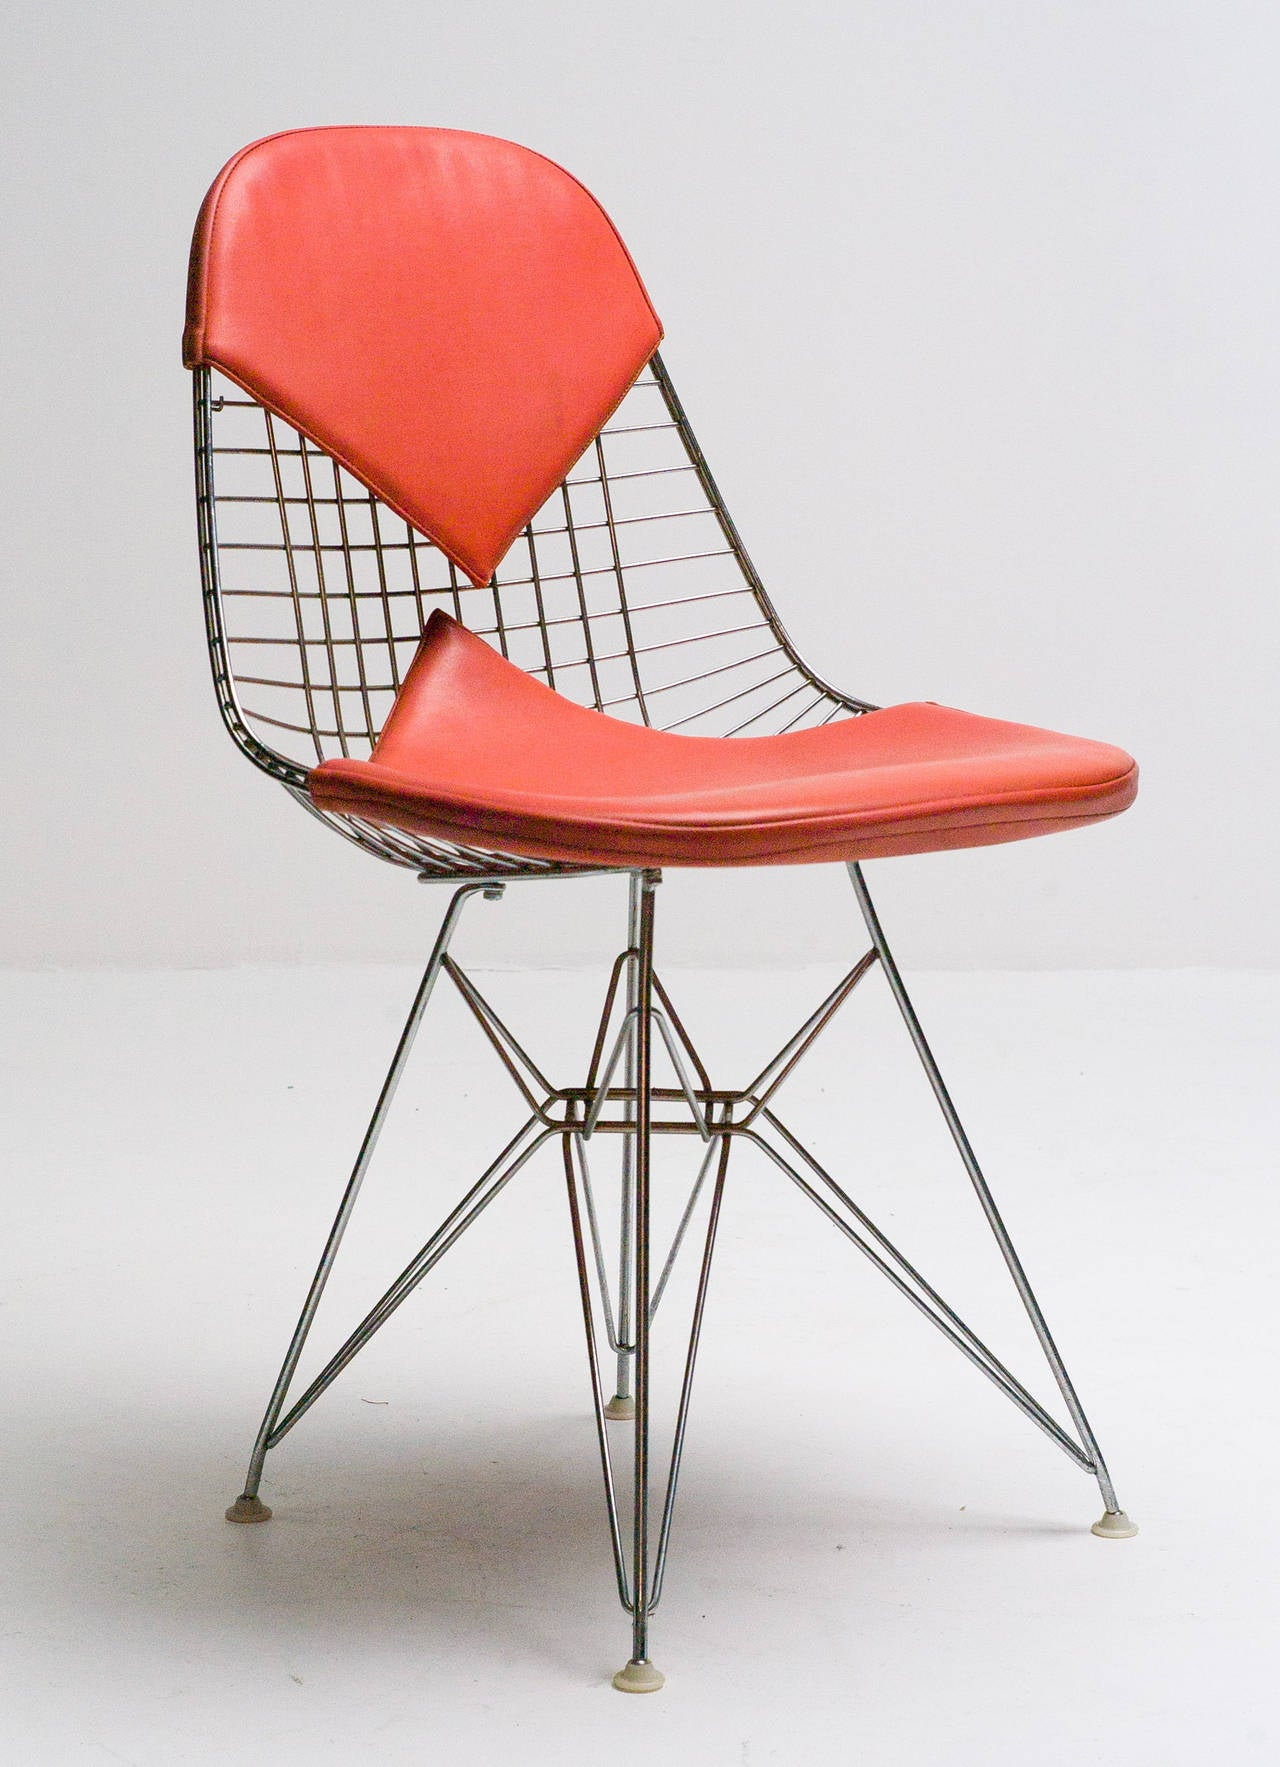 charles eames for herman miller dkr wire chair with original naugahyde bikini at 1stdibs. Black Bedroom Furniture Sets. Home Design Ideas